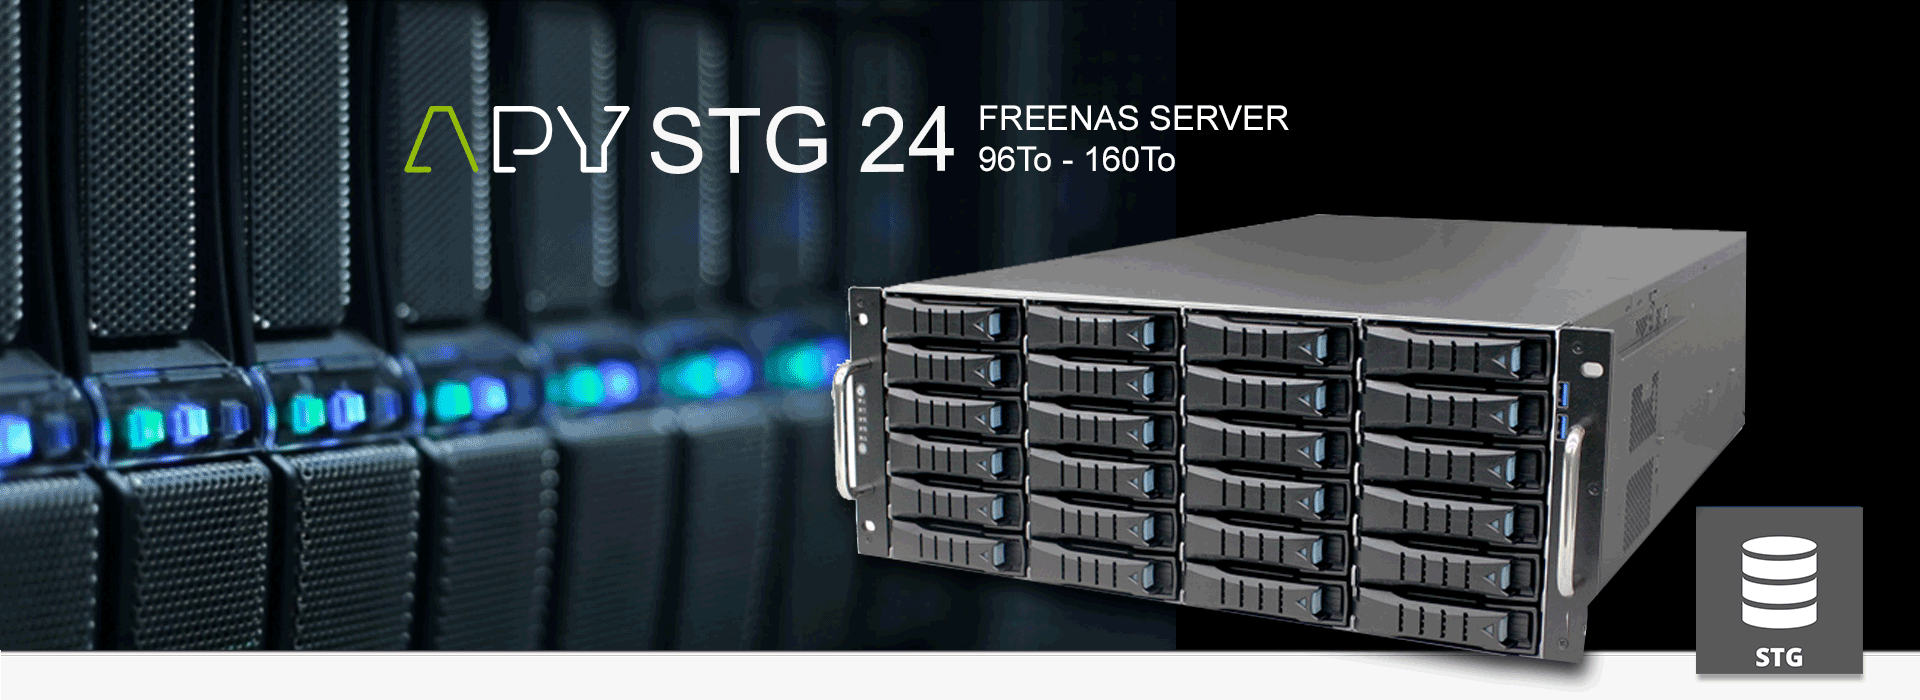 APY SERVEUR DE DONNEES FREENAS STG 24